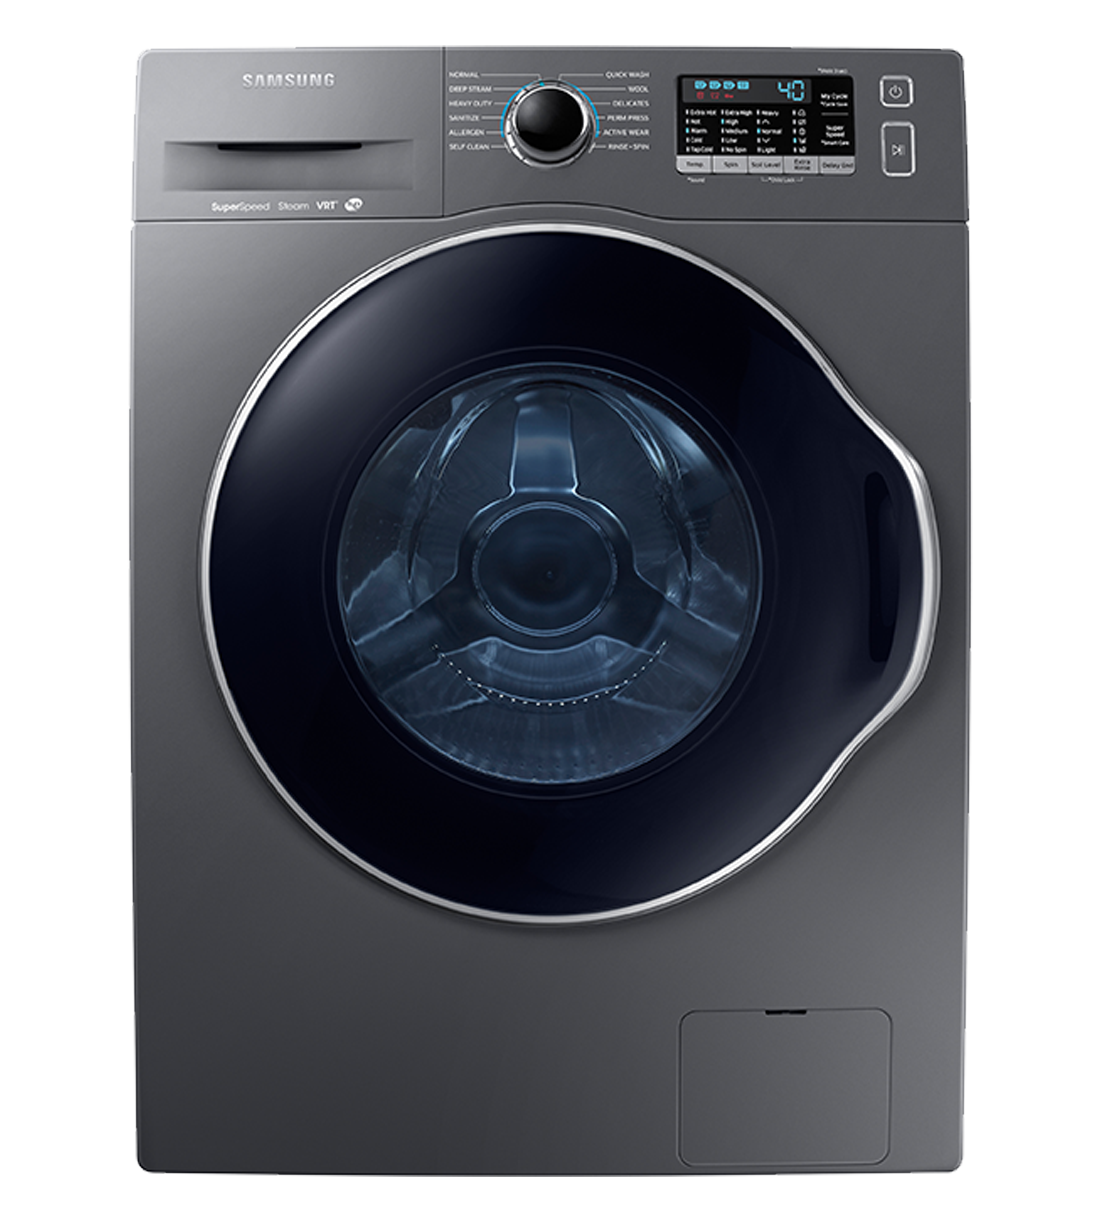 Samsung Washer 24 WW22K6800A